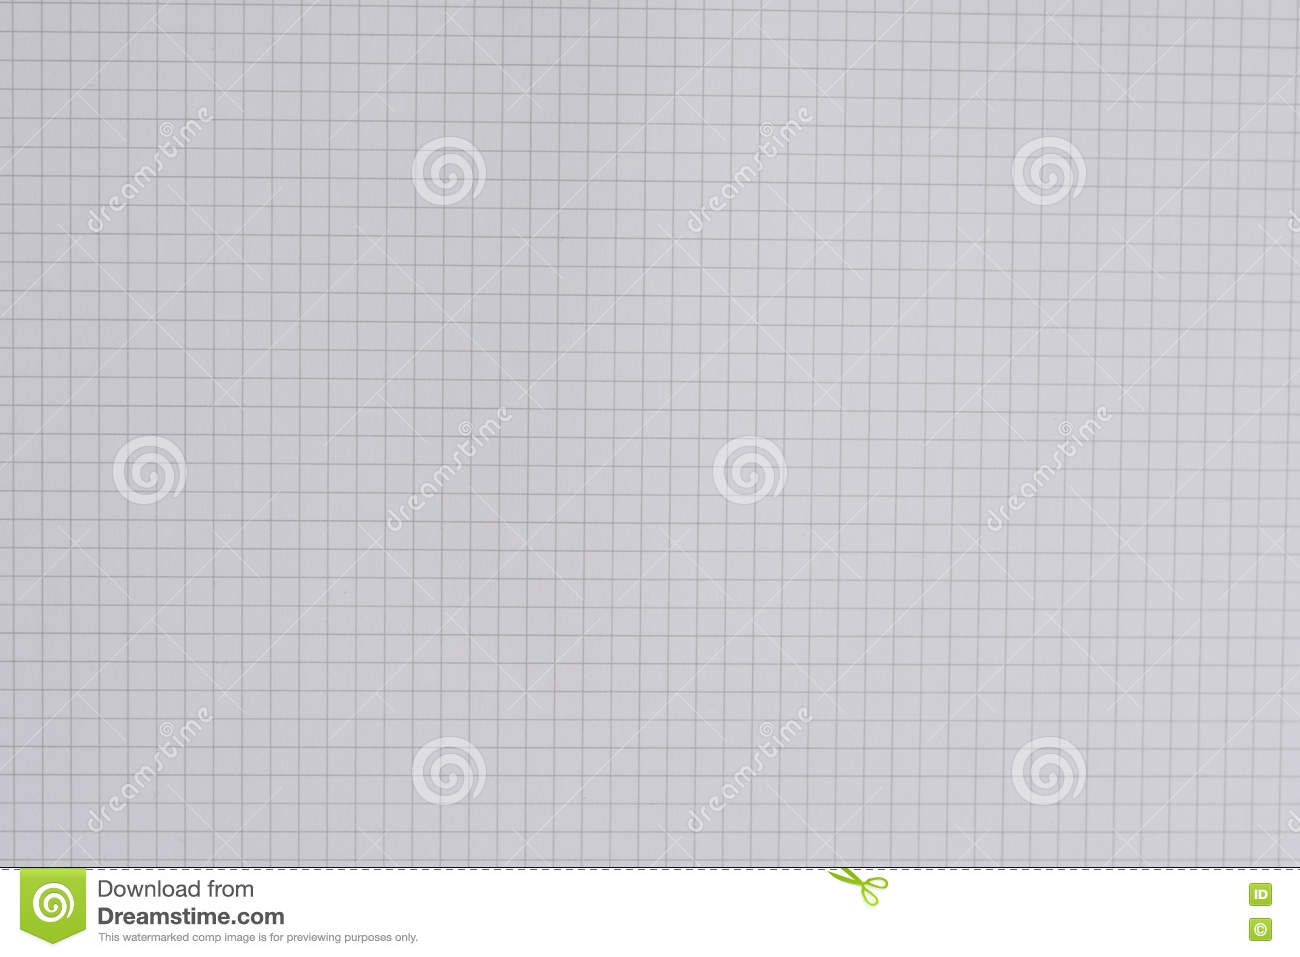 Empty math book background stock image. Image of material - 80913103